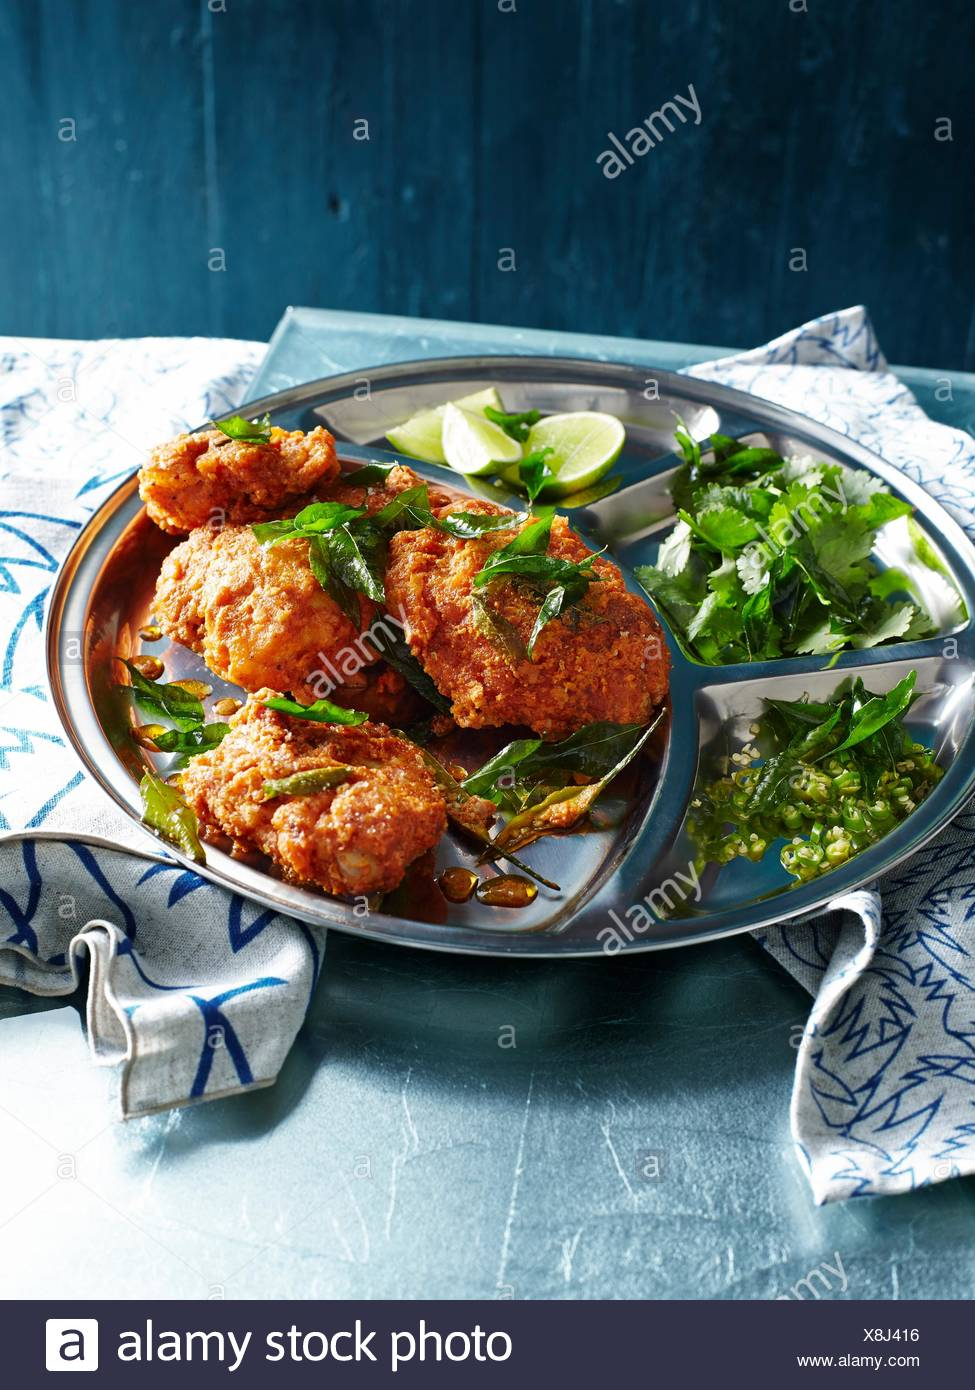 Chicken 65, a spicy deep fried chicken dish - Stock Image